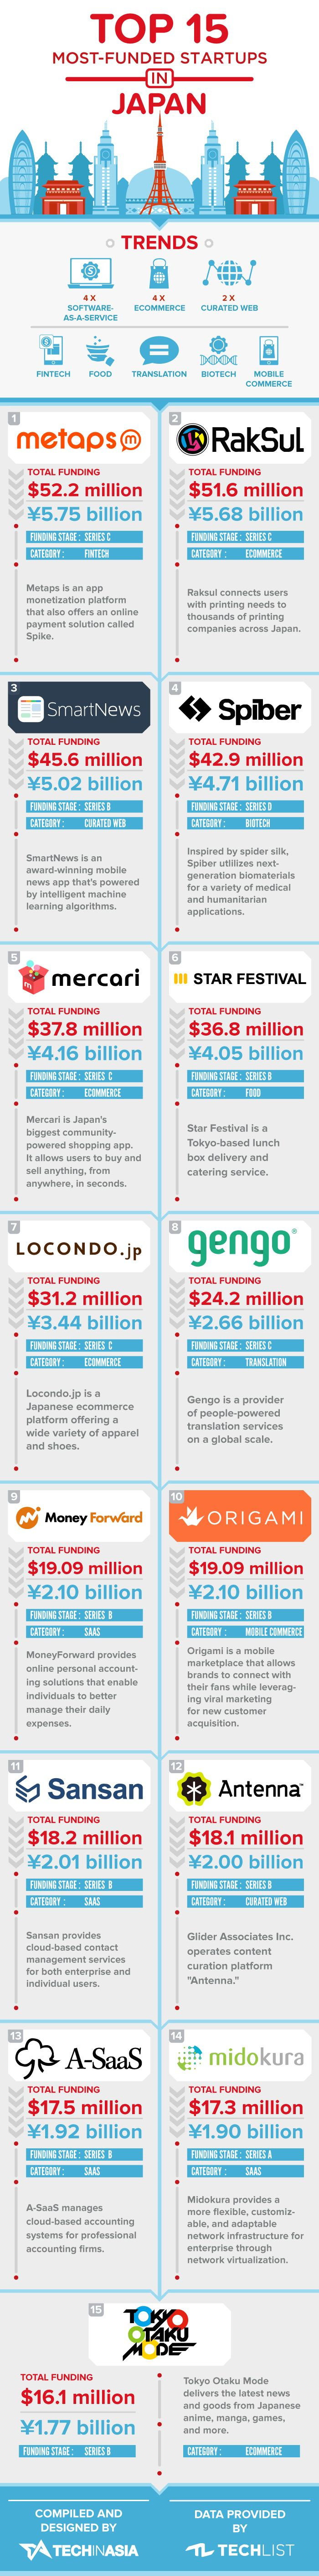 15-Most-Well-Funded-Startups-2 https://www.techinasia.com/top-15-most-funded-japanese-startups-infographic/